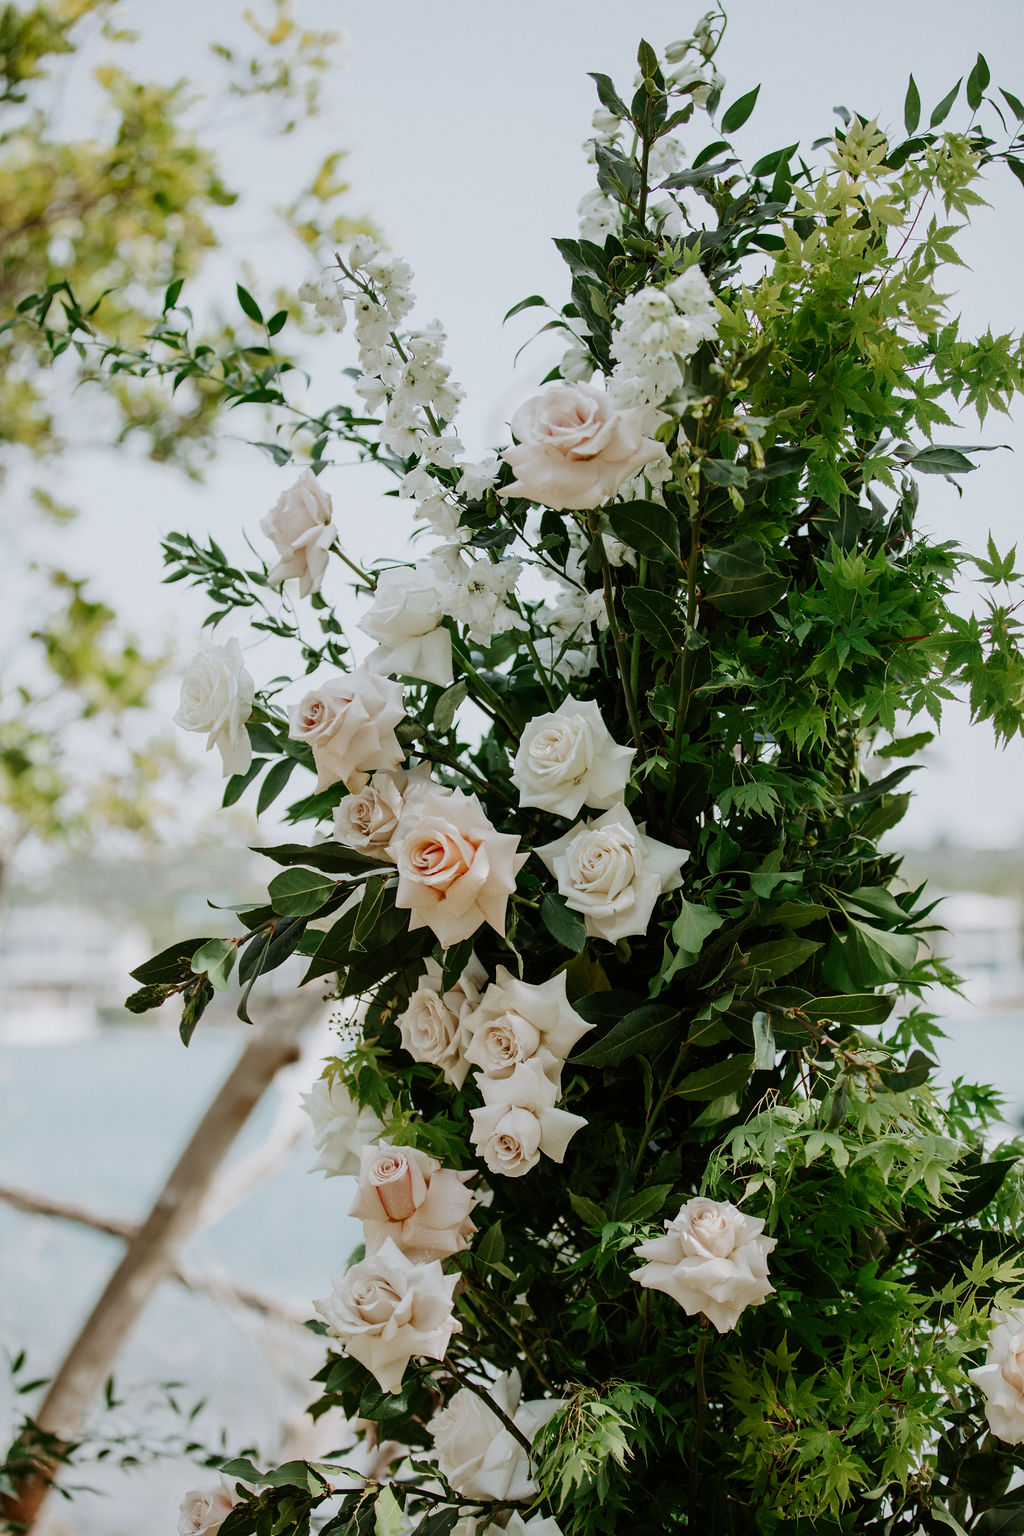 Antique Pink Blooms With White Roses and Dark Lush Greenery